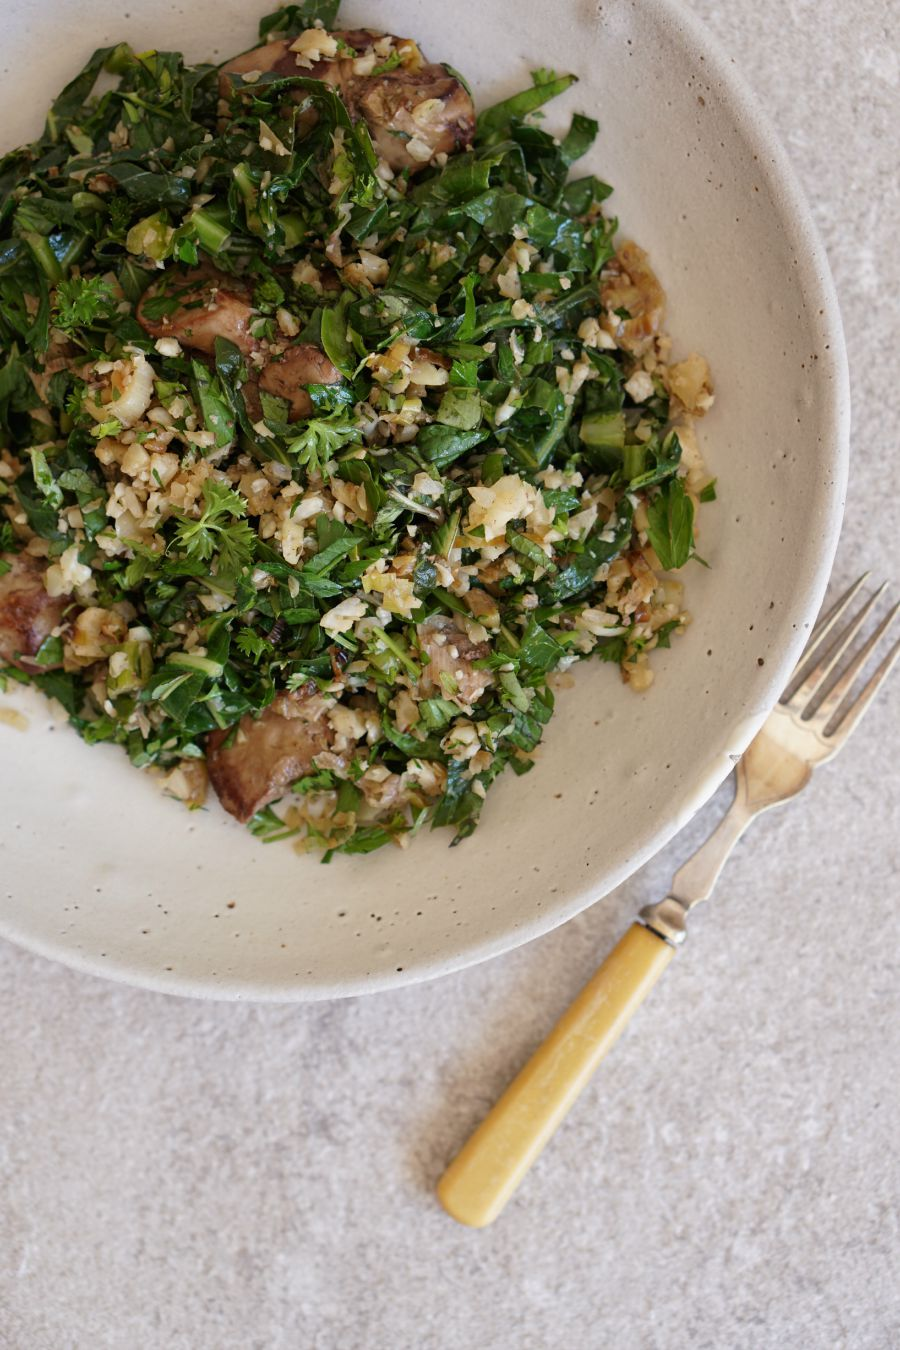 Sauteed Chicken Livers, Riced Cauli, Collards and Herbs - portrait